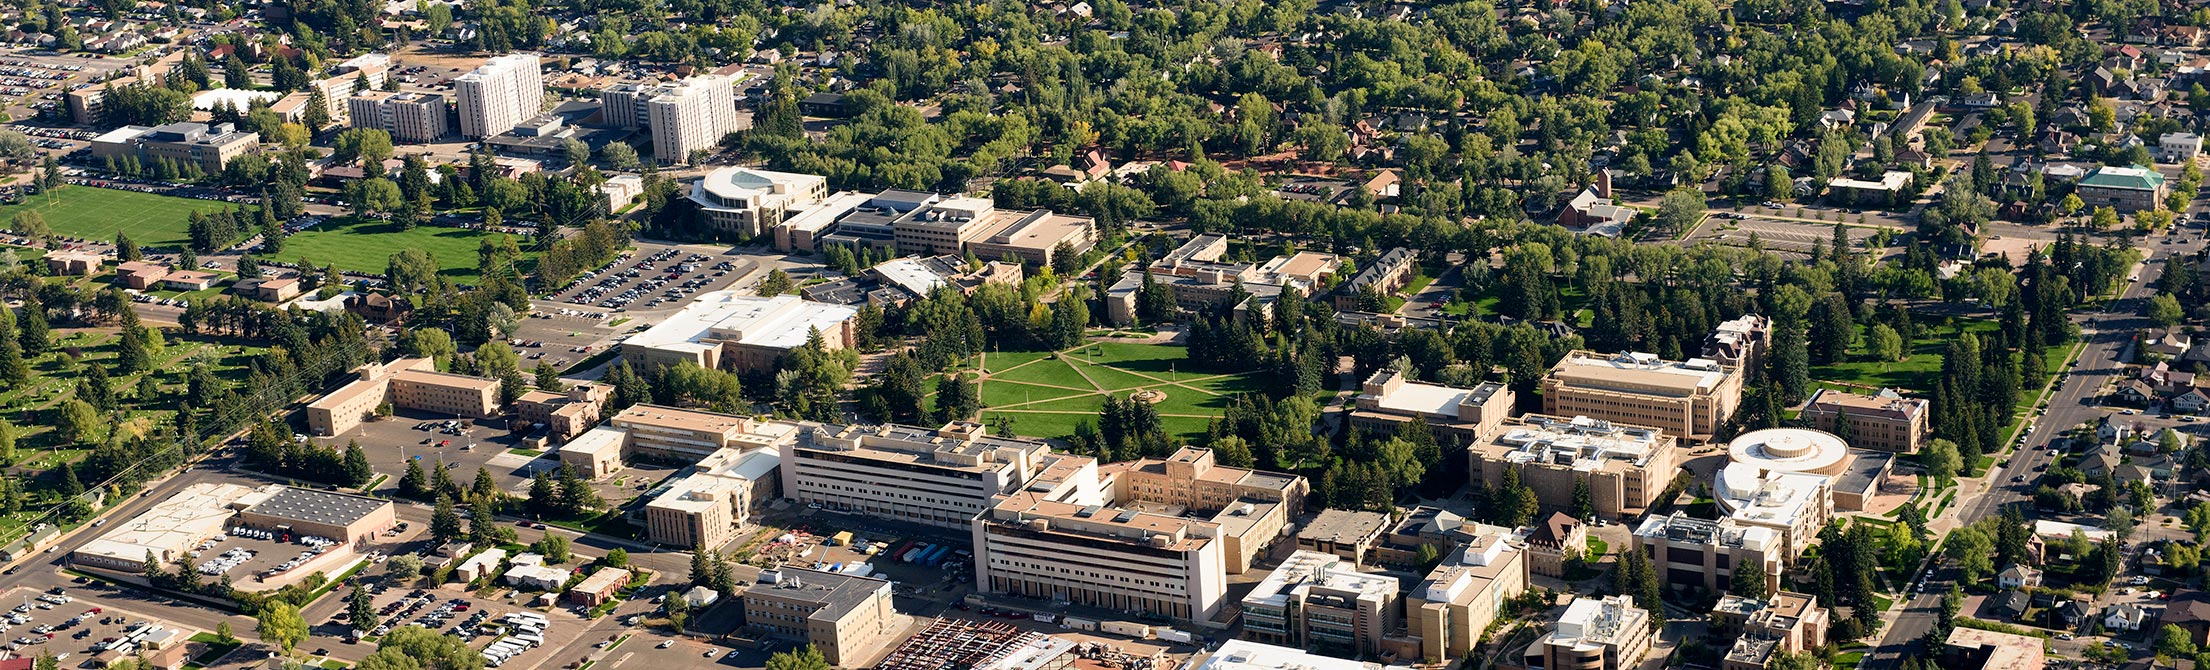 A bird's eye view of the University of Wyoming campus.